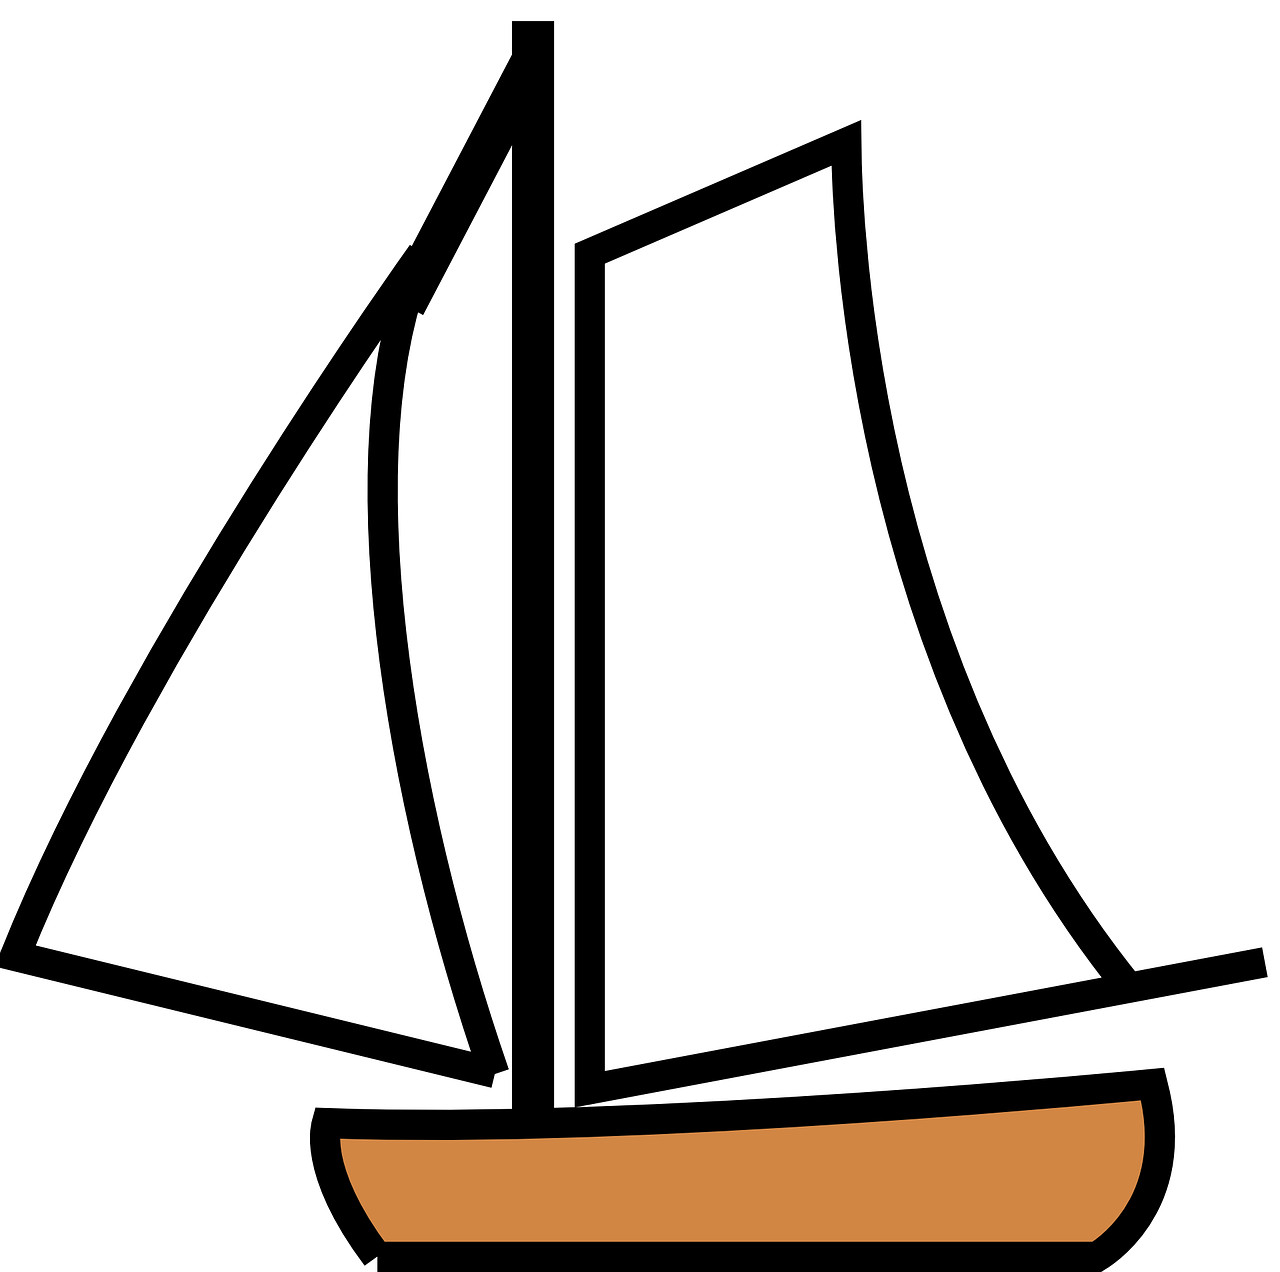 svg stock Yacht clipart simple boat. How to draw a